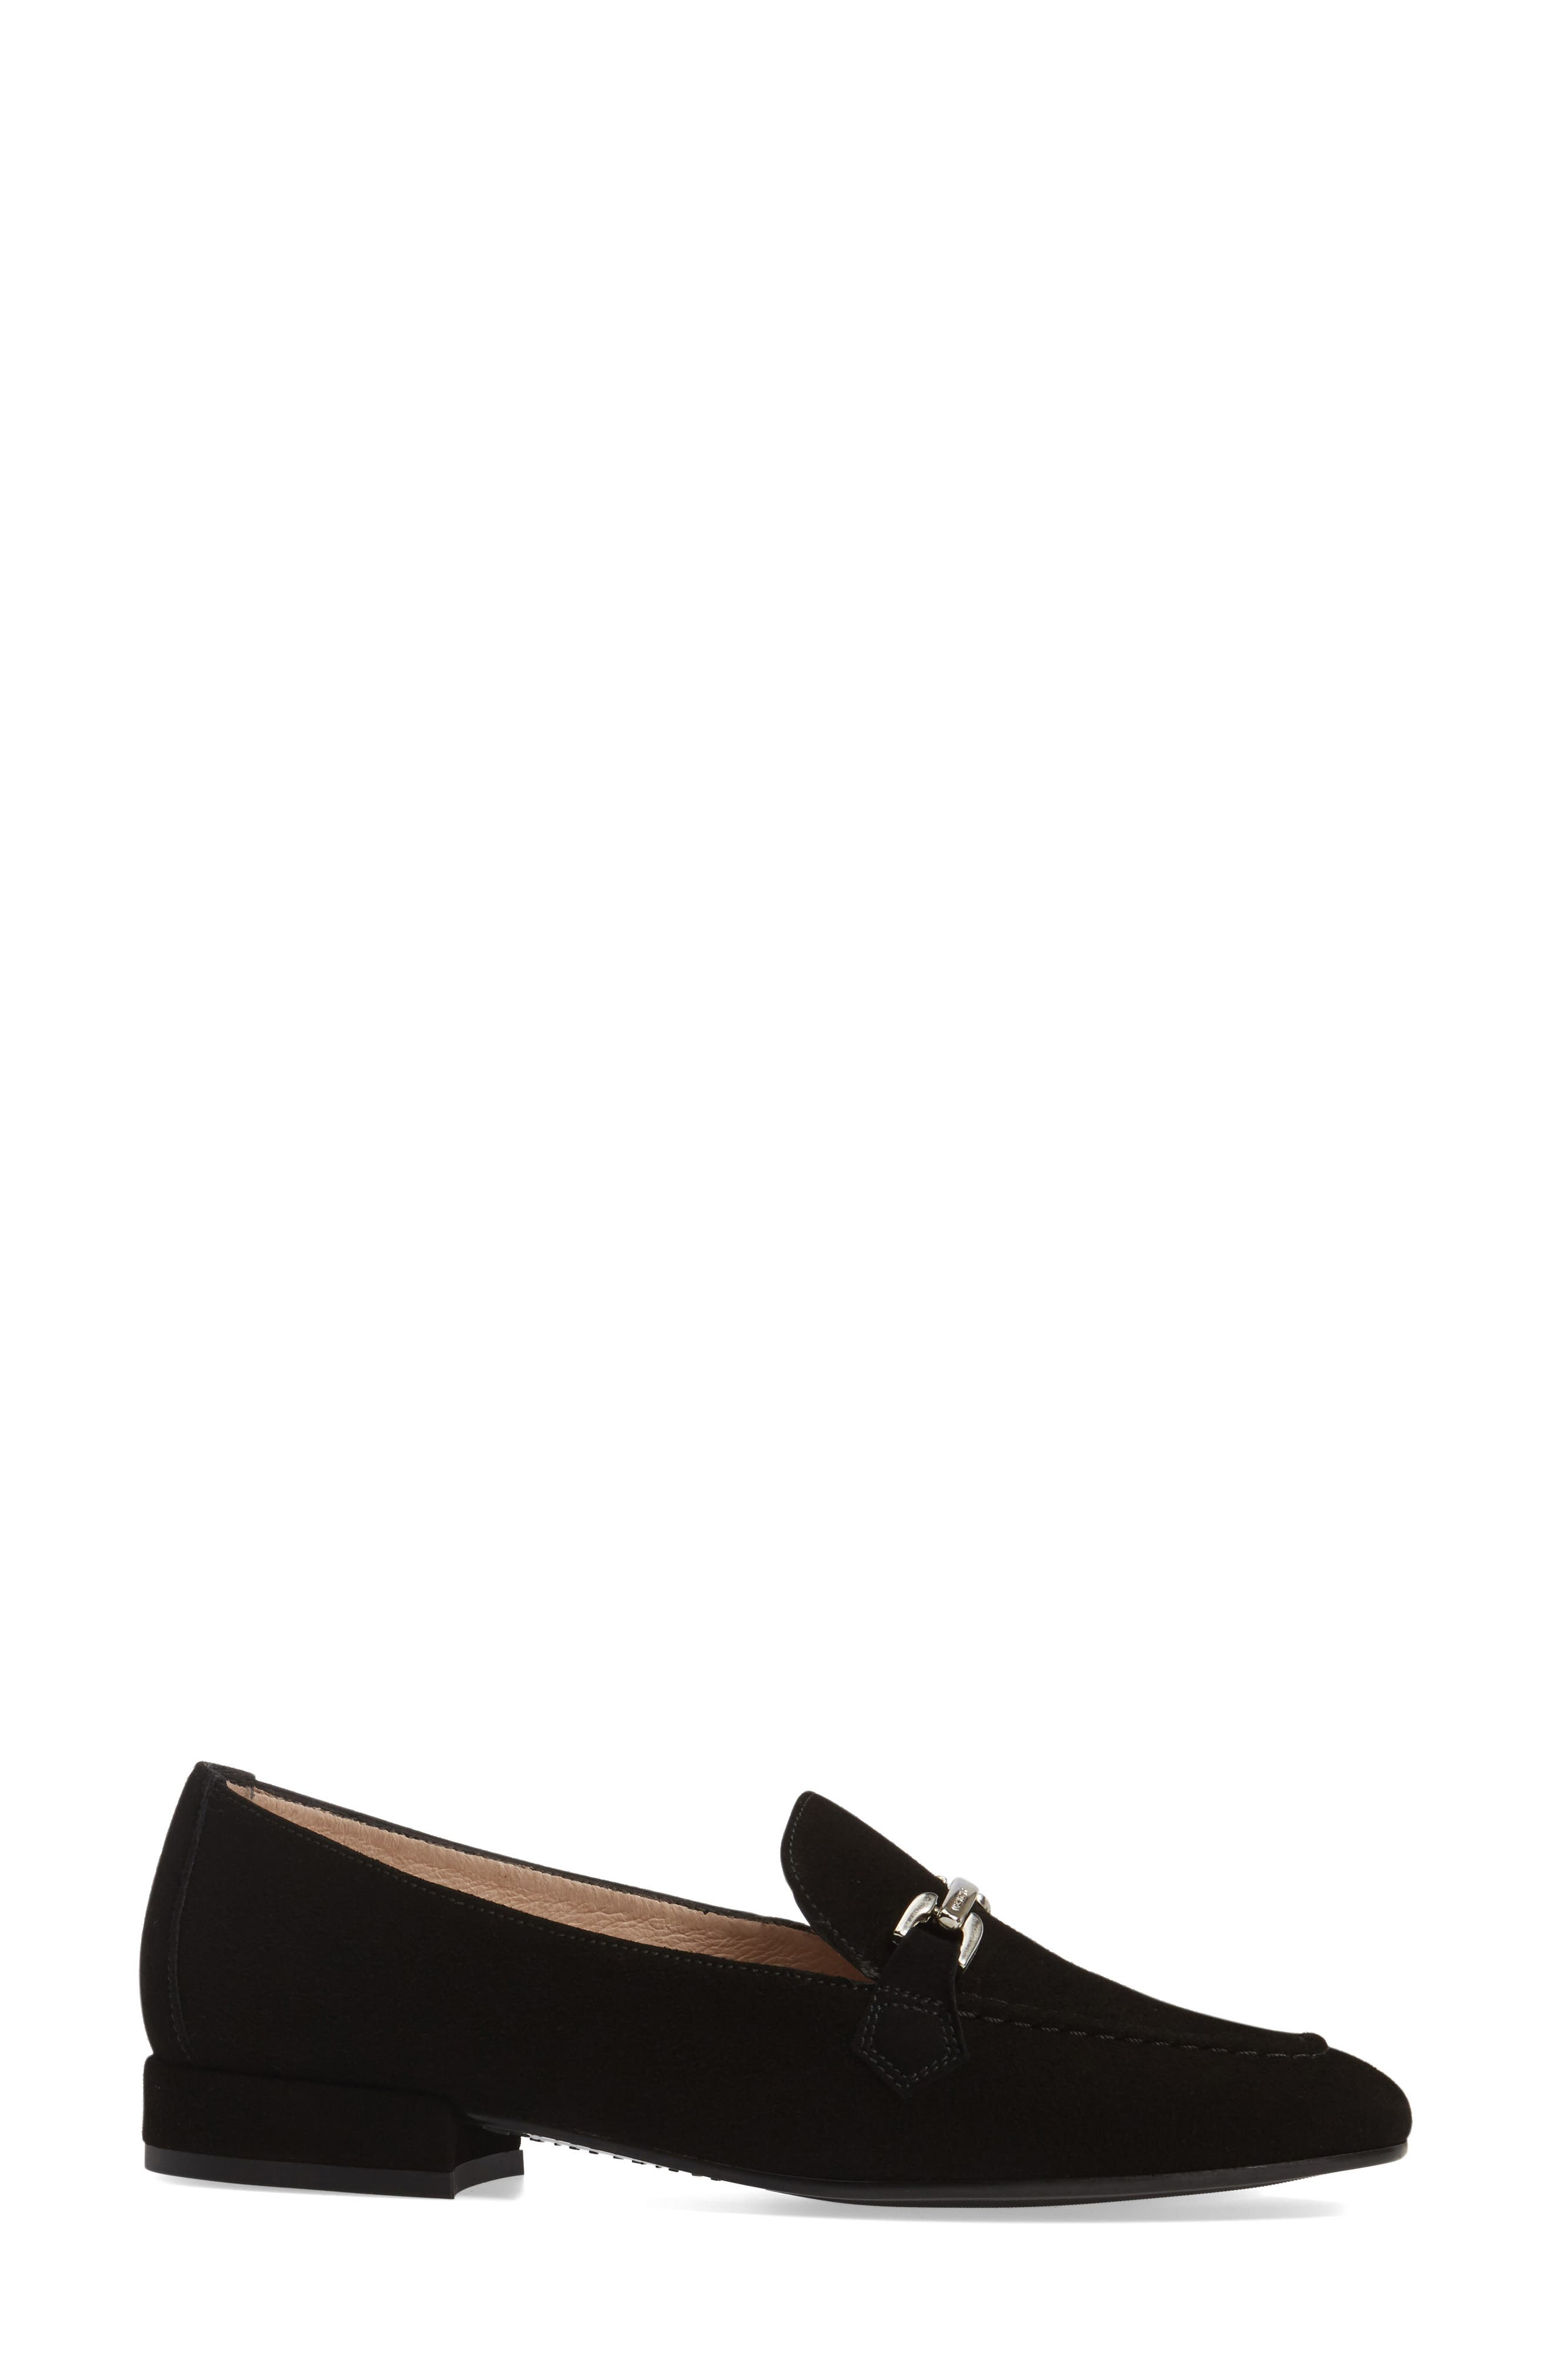 Evelyn Loafer,                             Alternate thumbnail 3, color,                             BLACK FABRIC